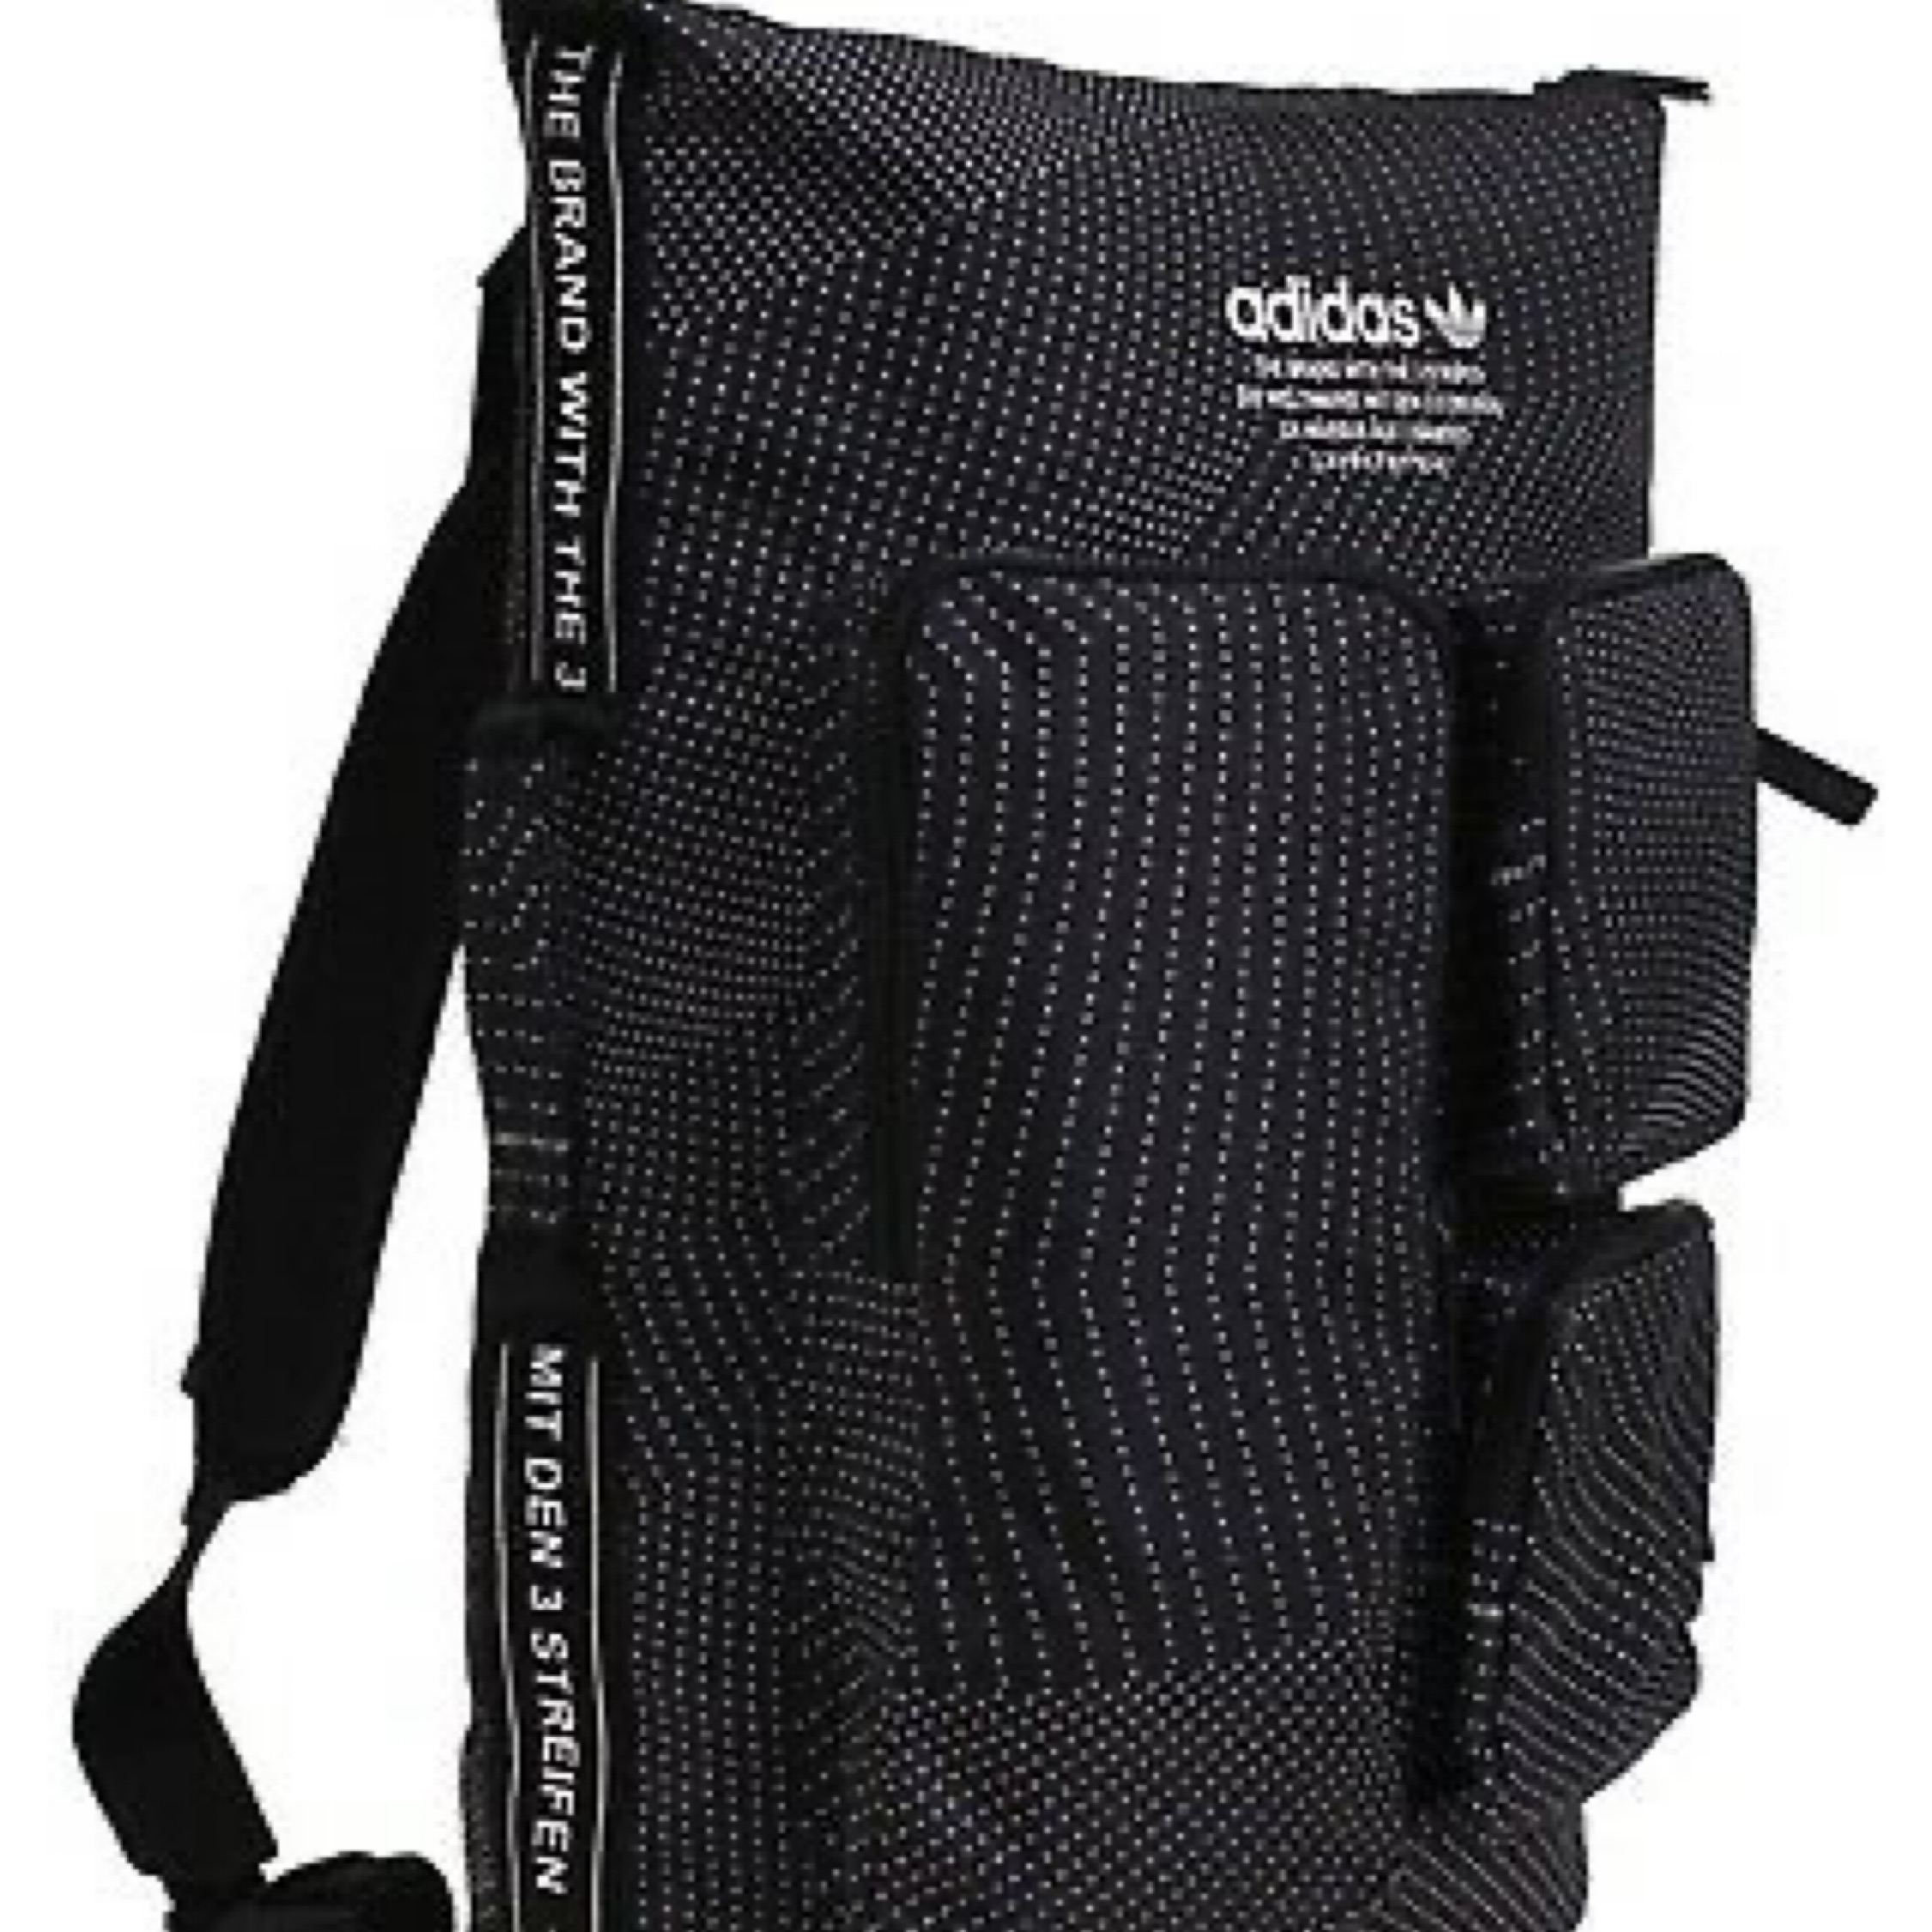 nmd backpack The Adidas Sports Shoes